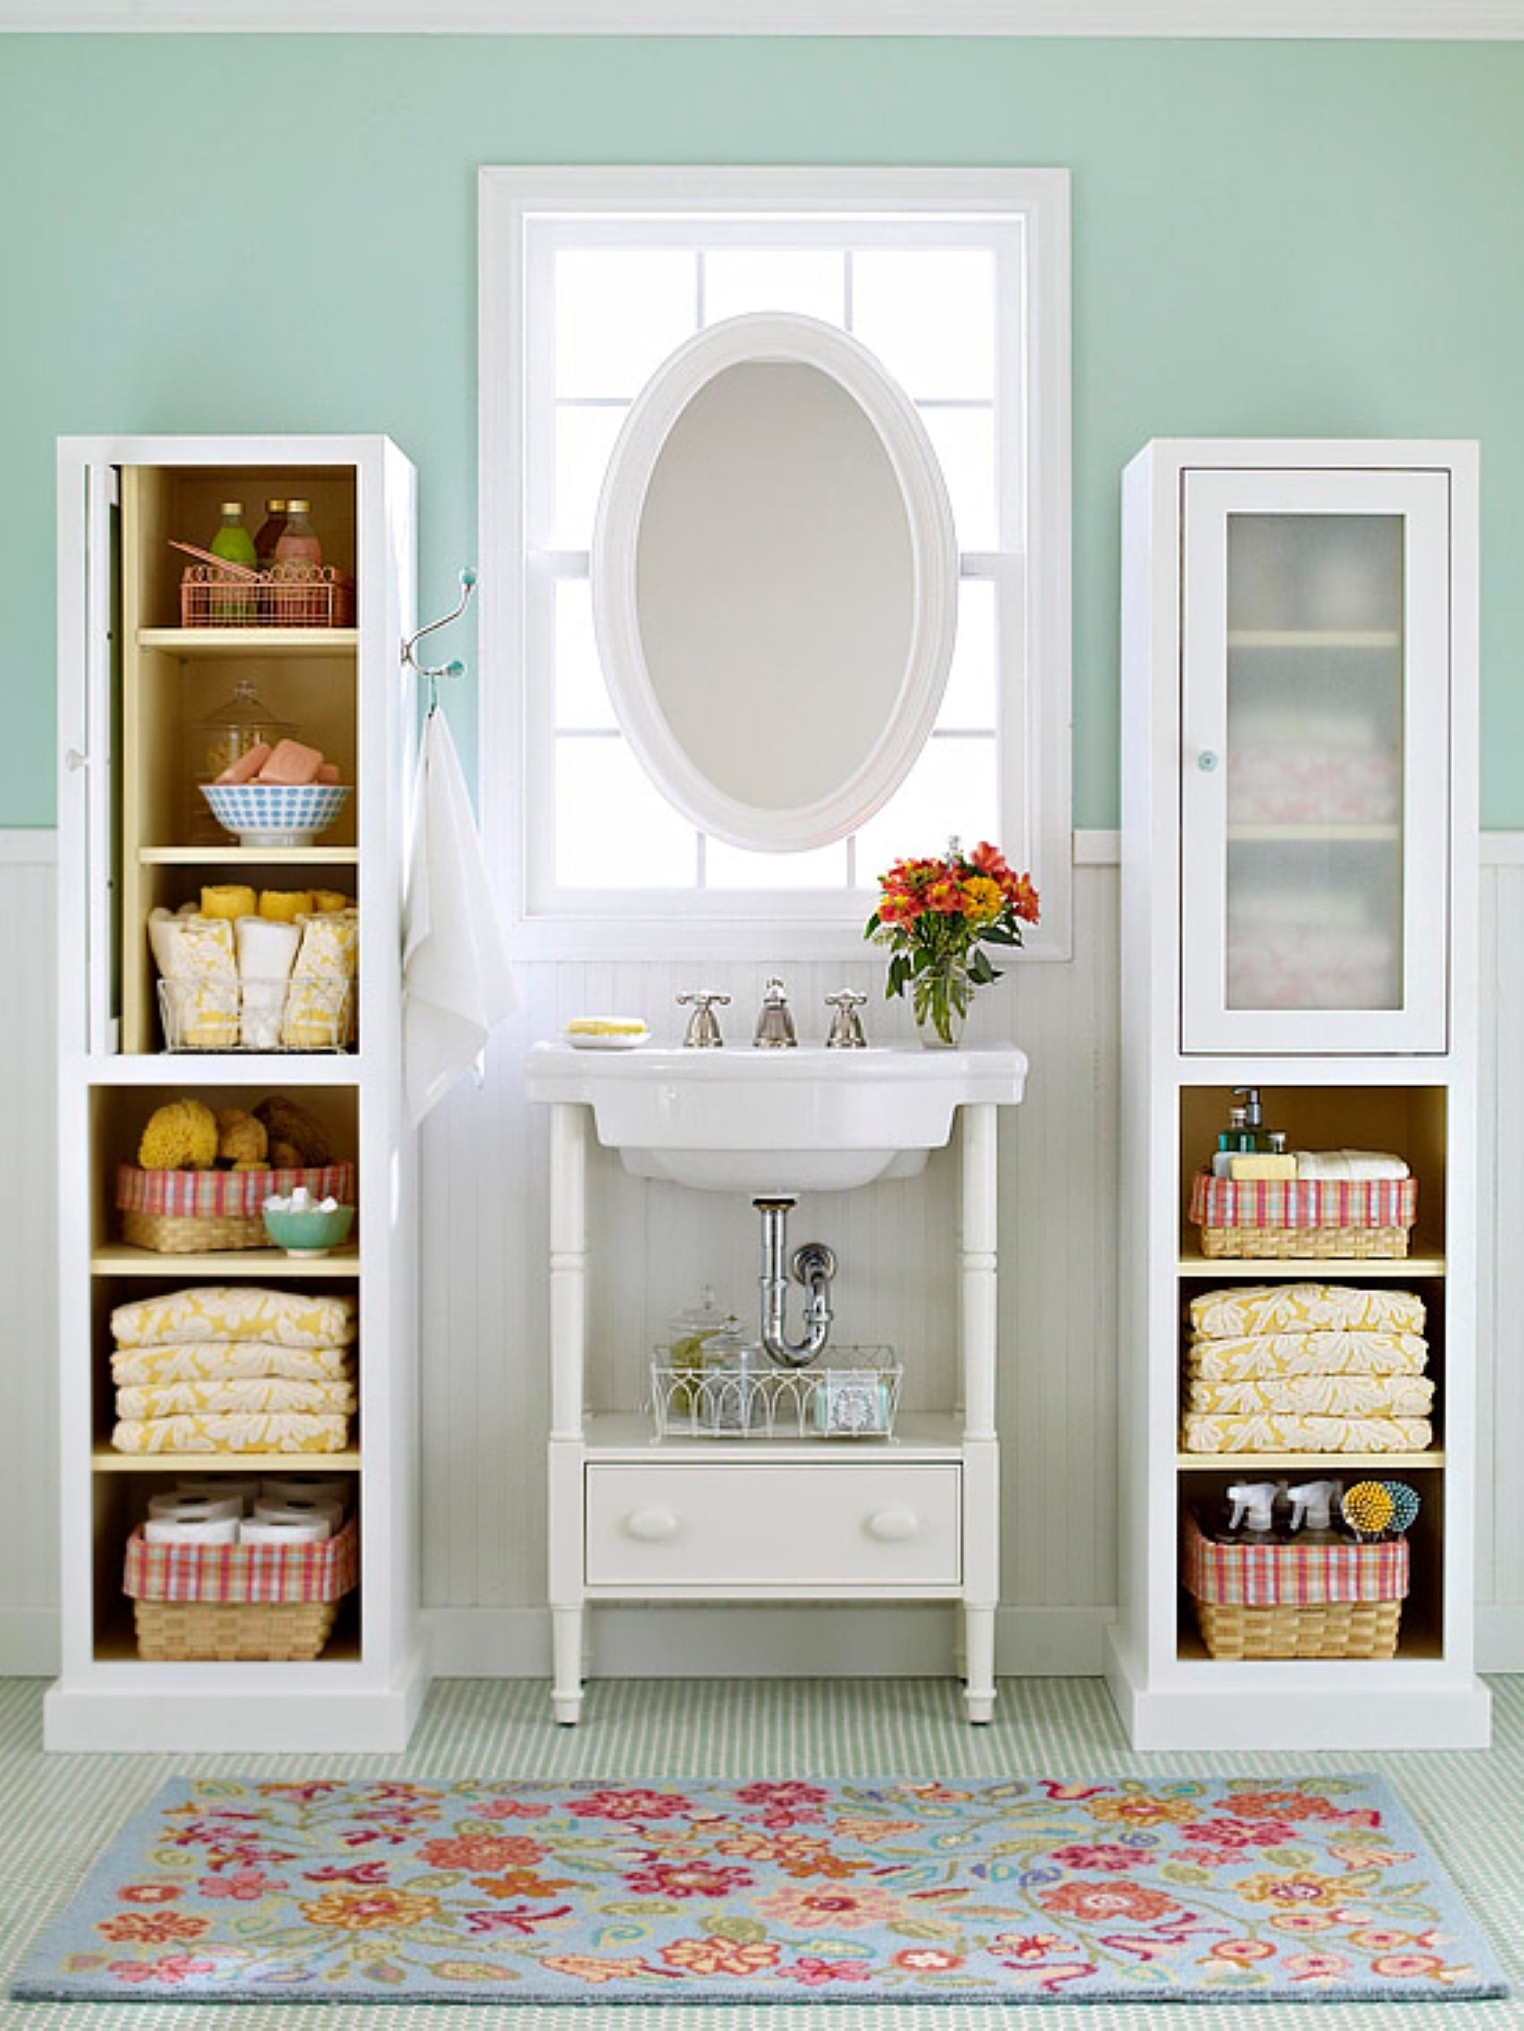 Stylish Bathroom Storage Ideas With Various Examples Of Best Decoration Of Bathroom To The Inspiration Design Ideas (View 5 of 23)